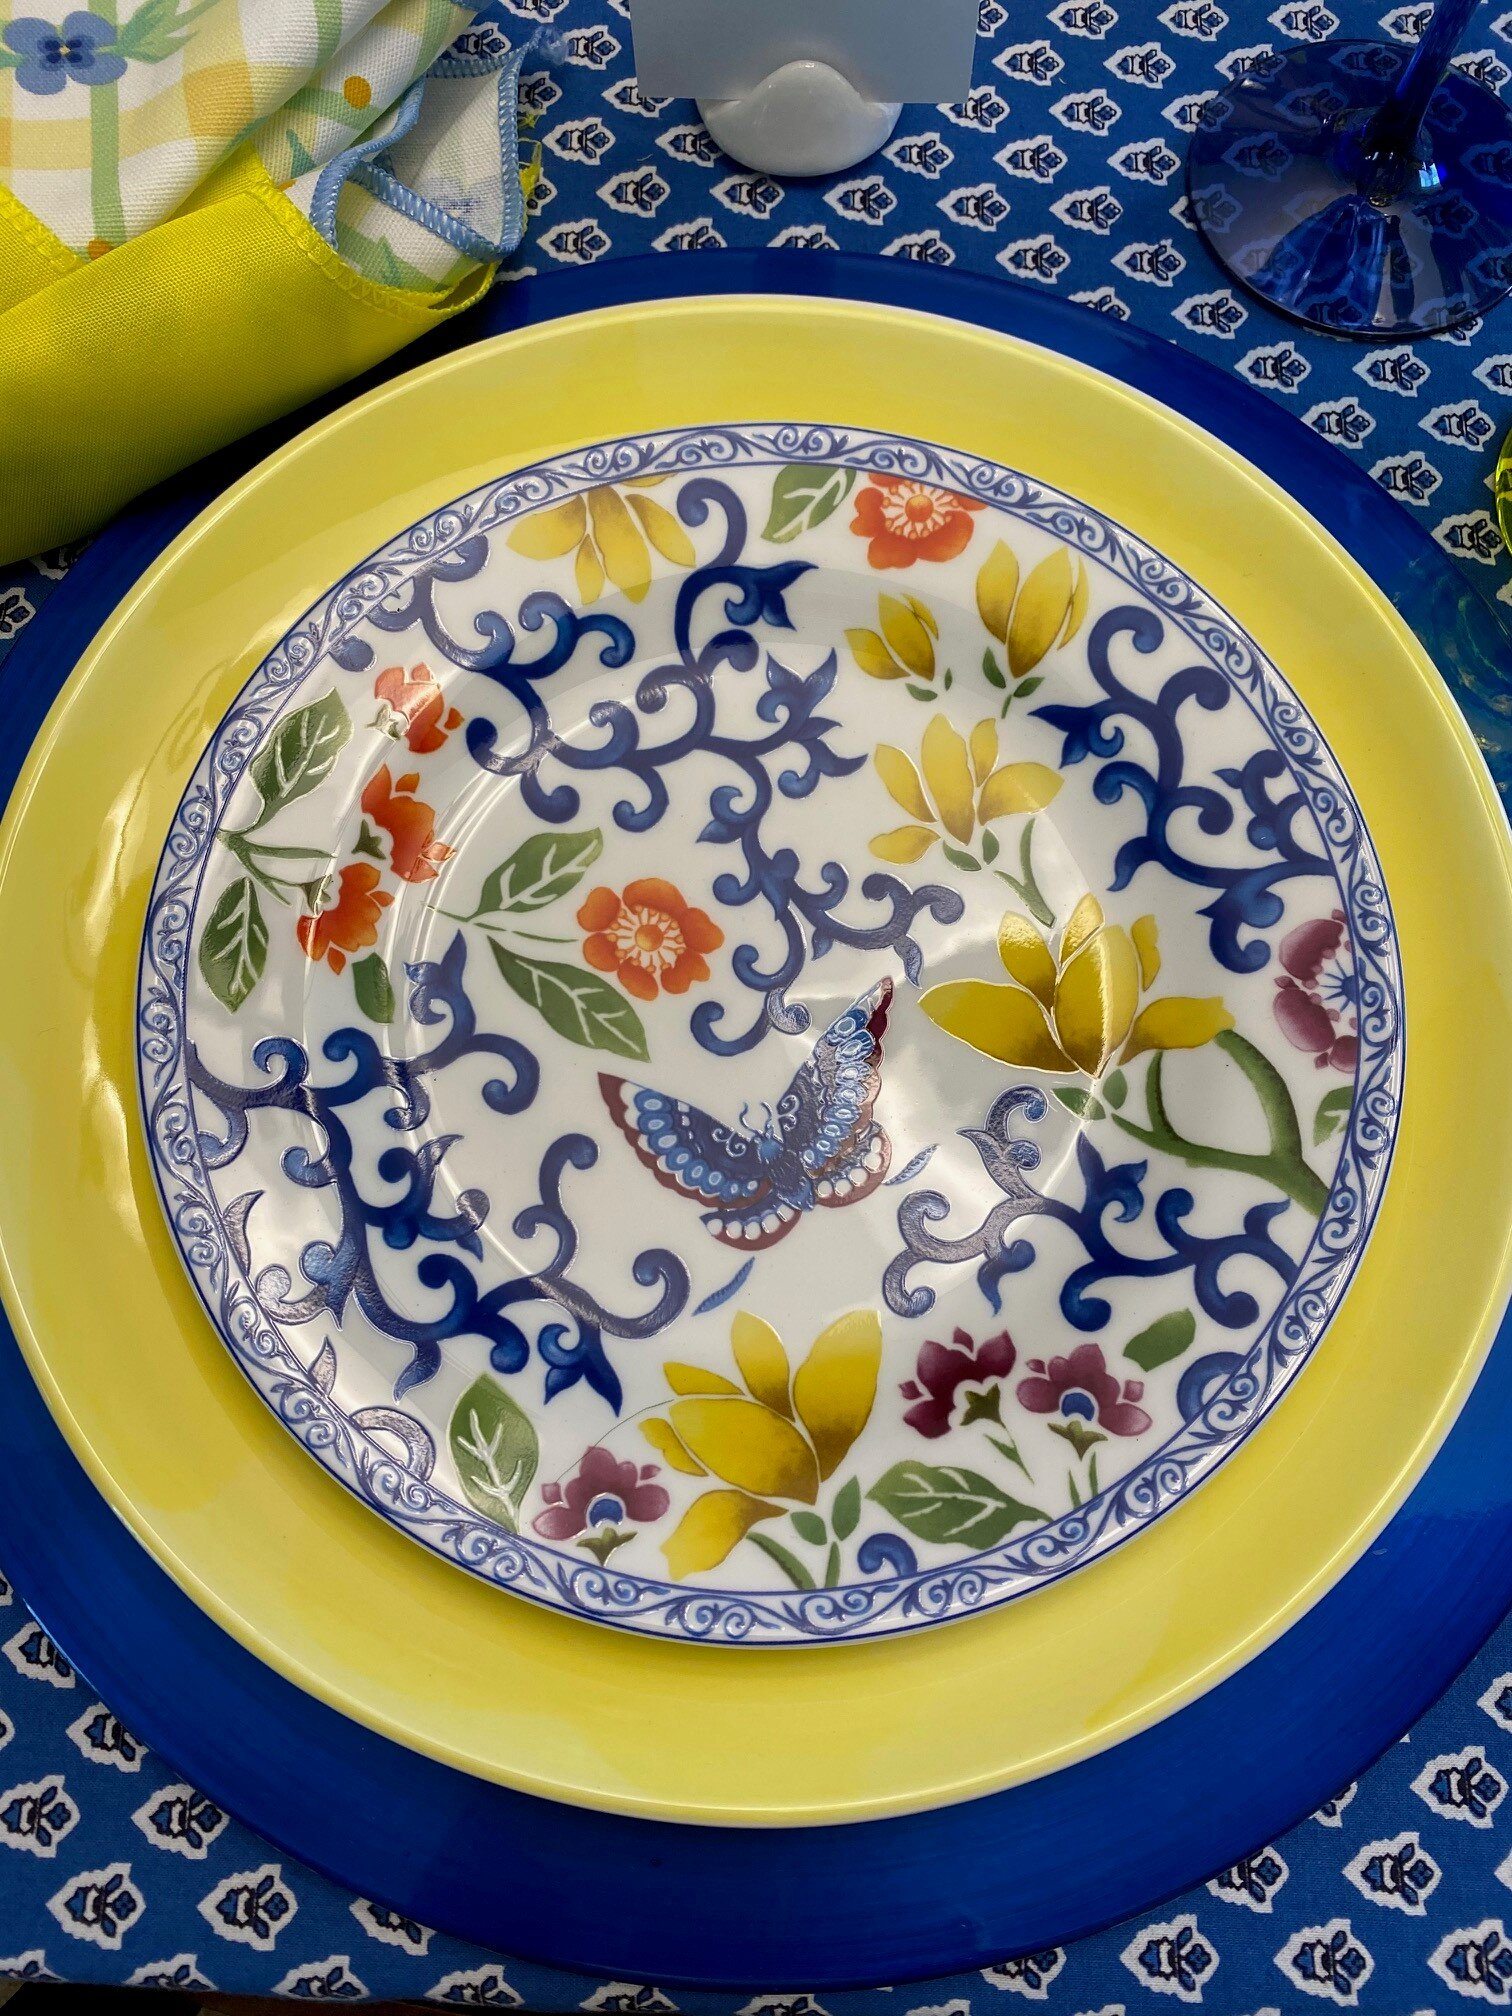 Made In Portugal Dinnerware Homegoods : portugal, dinnerware, homegoods, Whispers, Heart